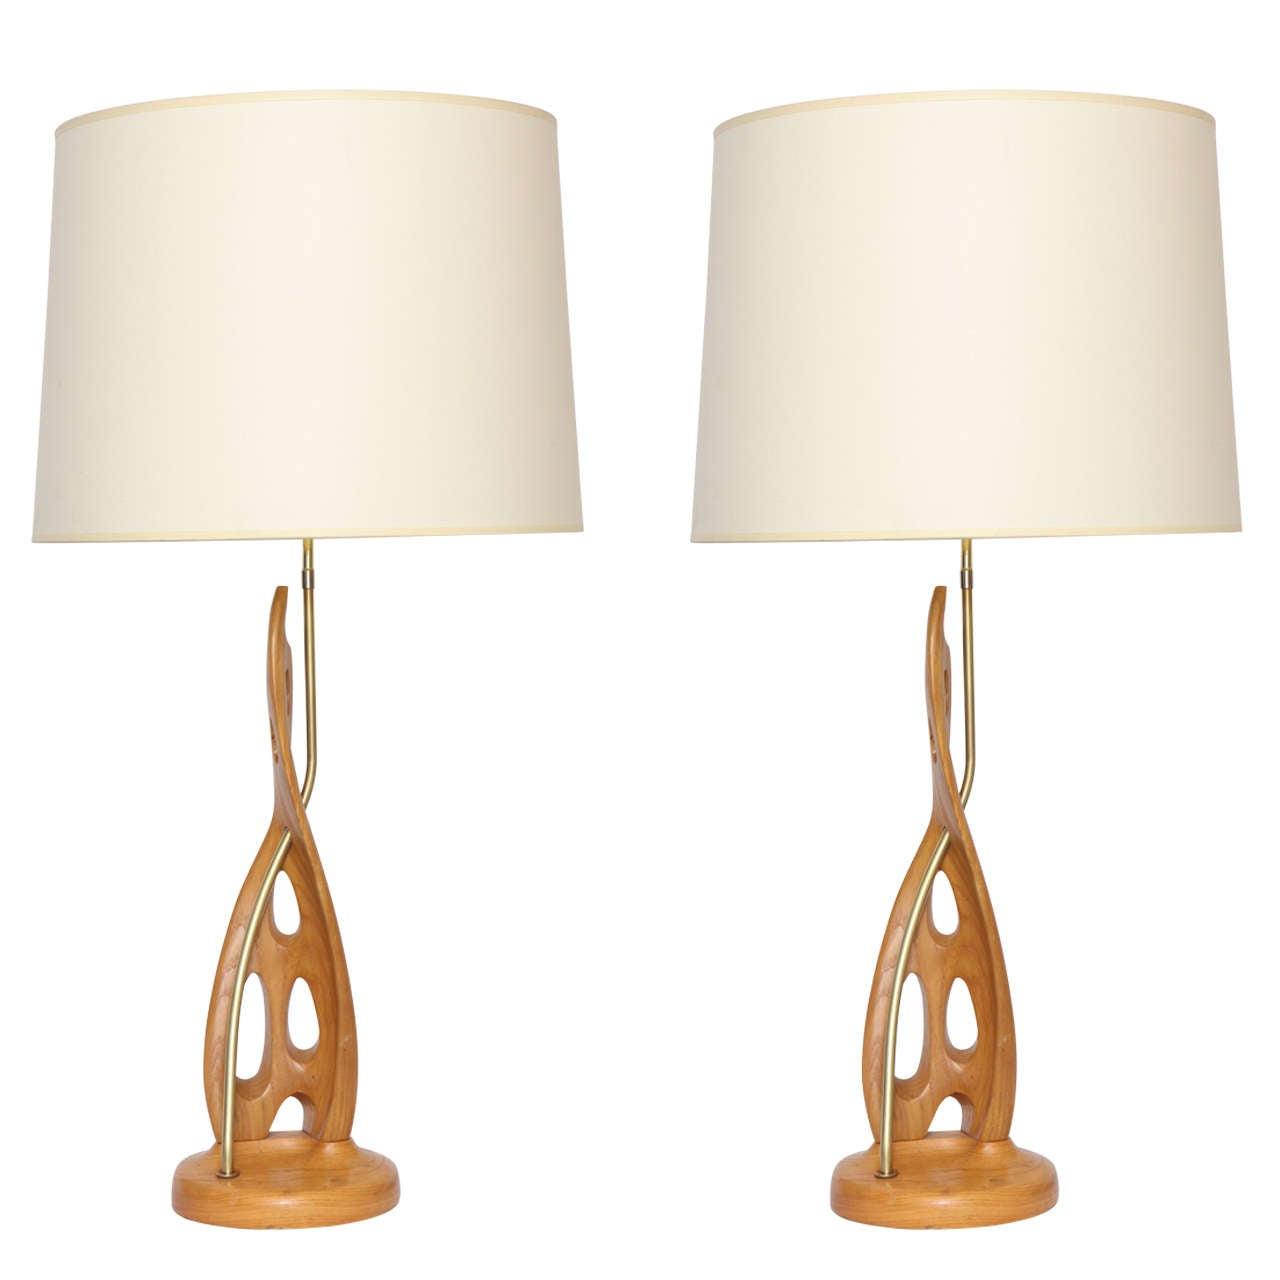 Pair of 1950s Wood and Brass Sculptural Table Lamps